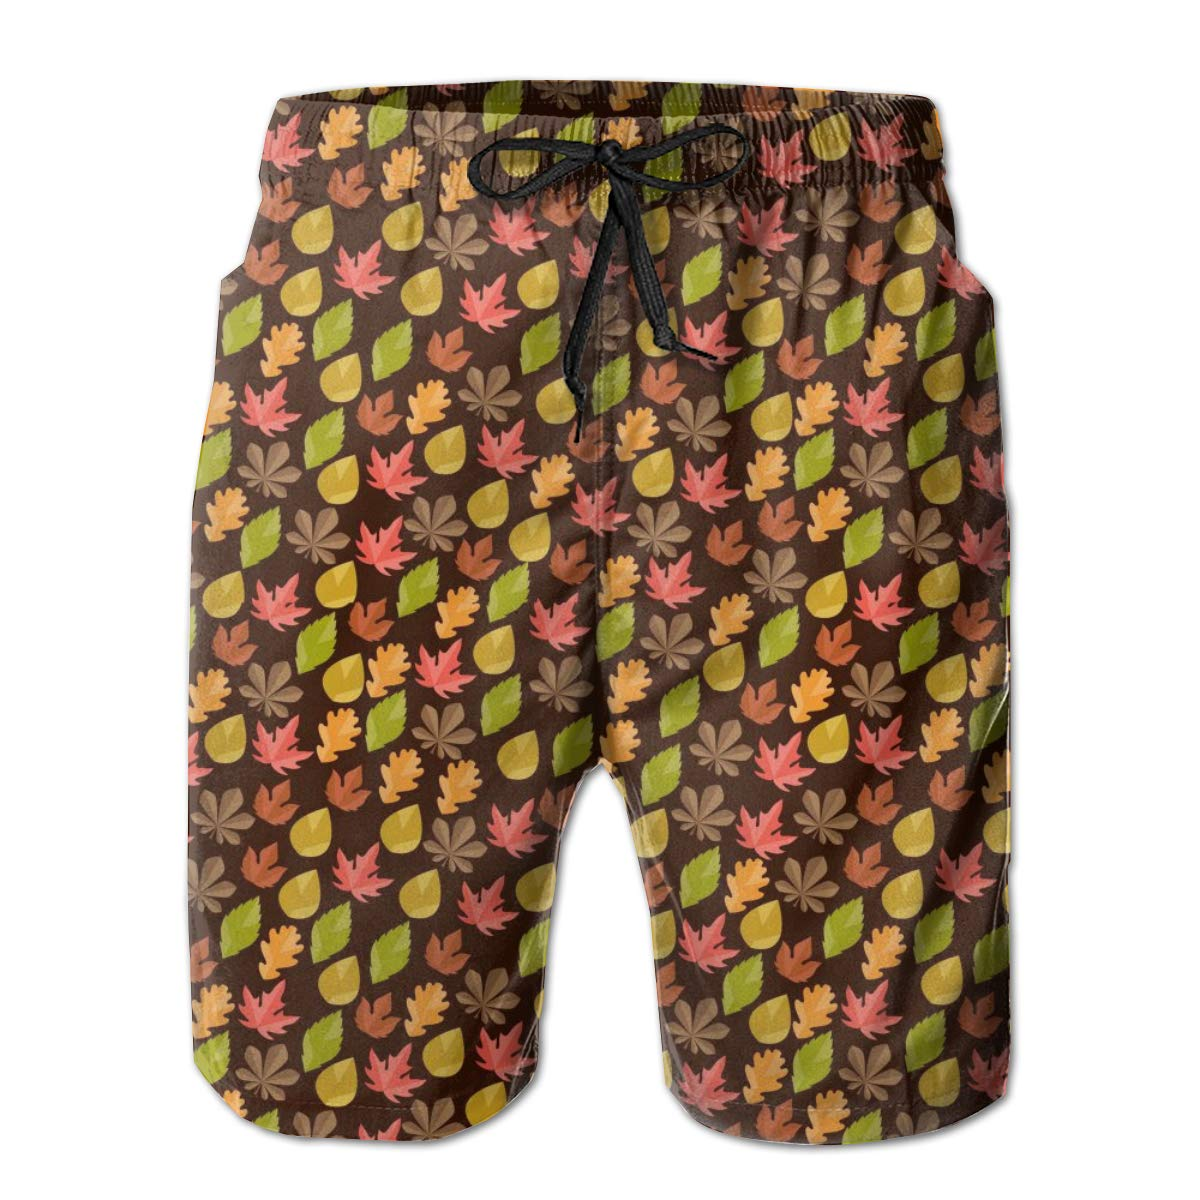 Mens Swim Trunks Quick Dry Autumn Leaves with Maple Leaf Printed Summer Beach Shorts Board Beach Short